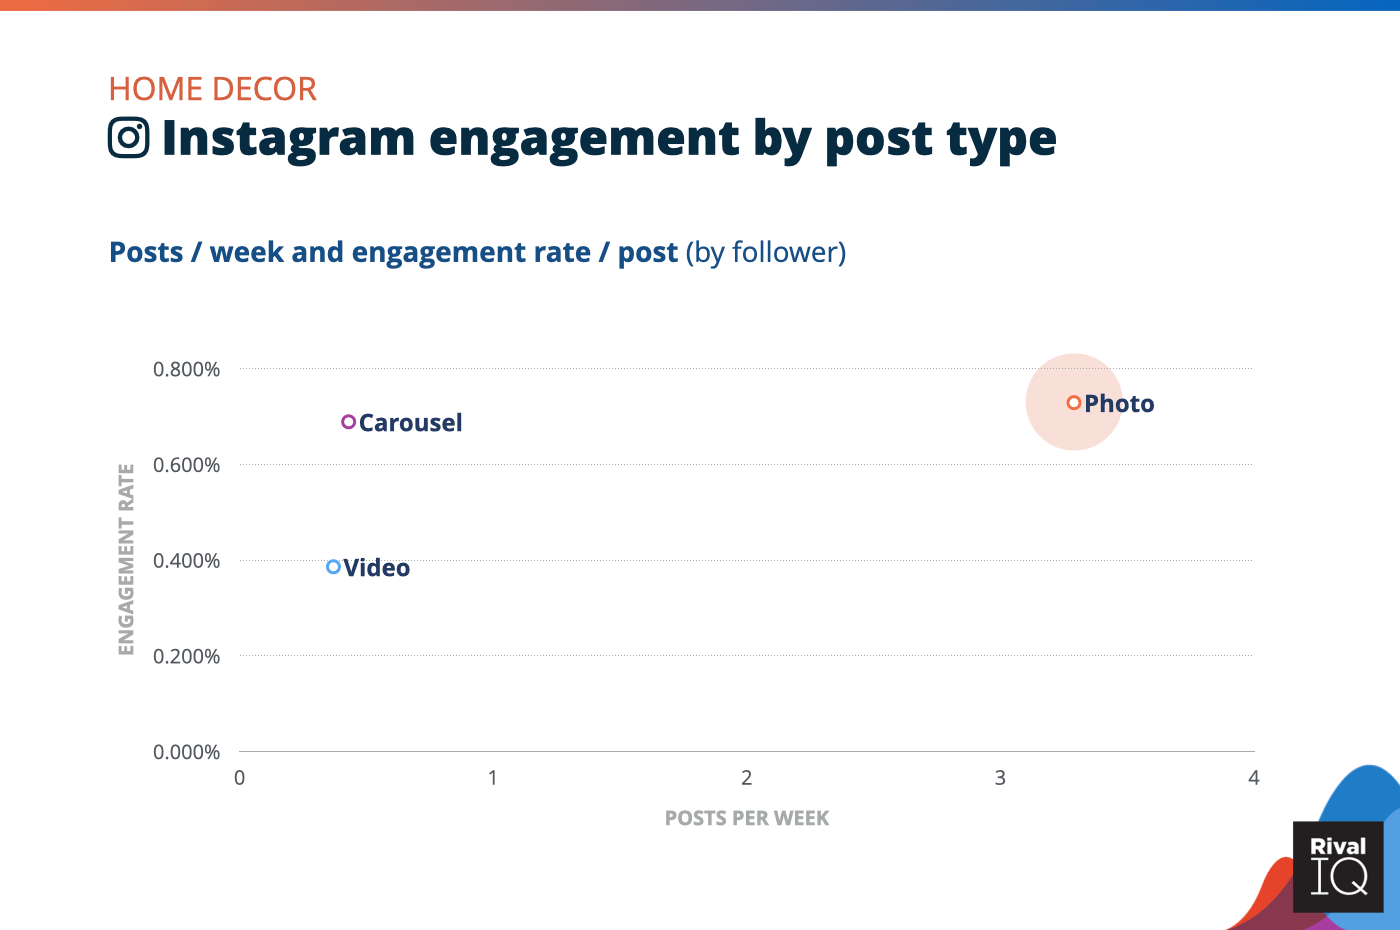 Chart of Instagram posts per week and engagement rate by post type, Home Decor